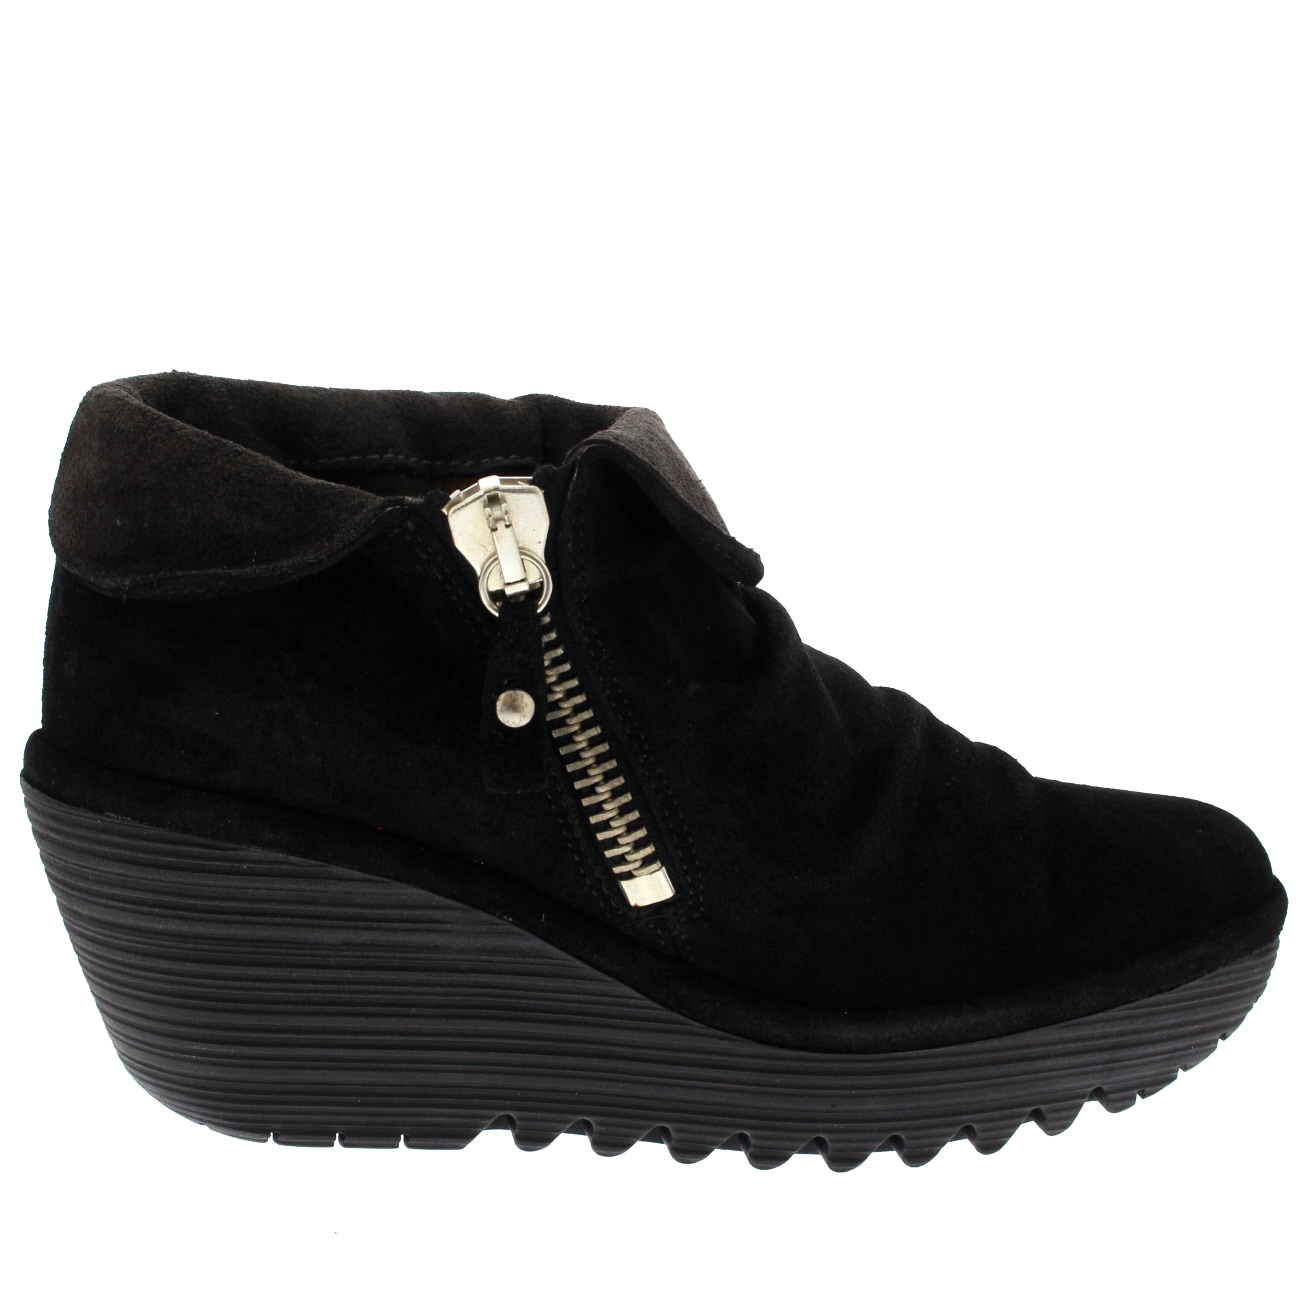 Womens Fly London Yoxi Oil Suede Fold Ankle Cuff Wedge Platform Heel Ankle Fold Boot UK 3-9 59a1c5